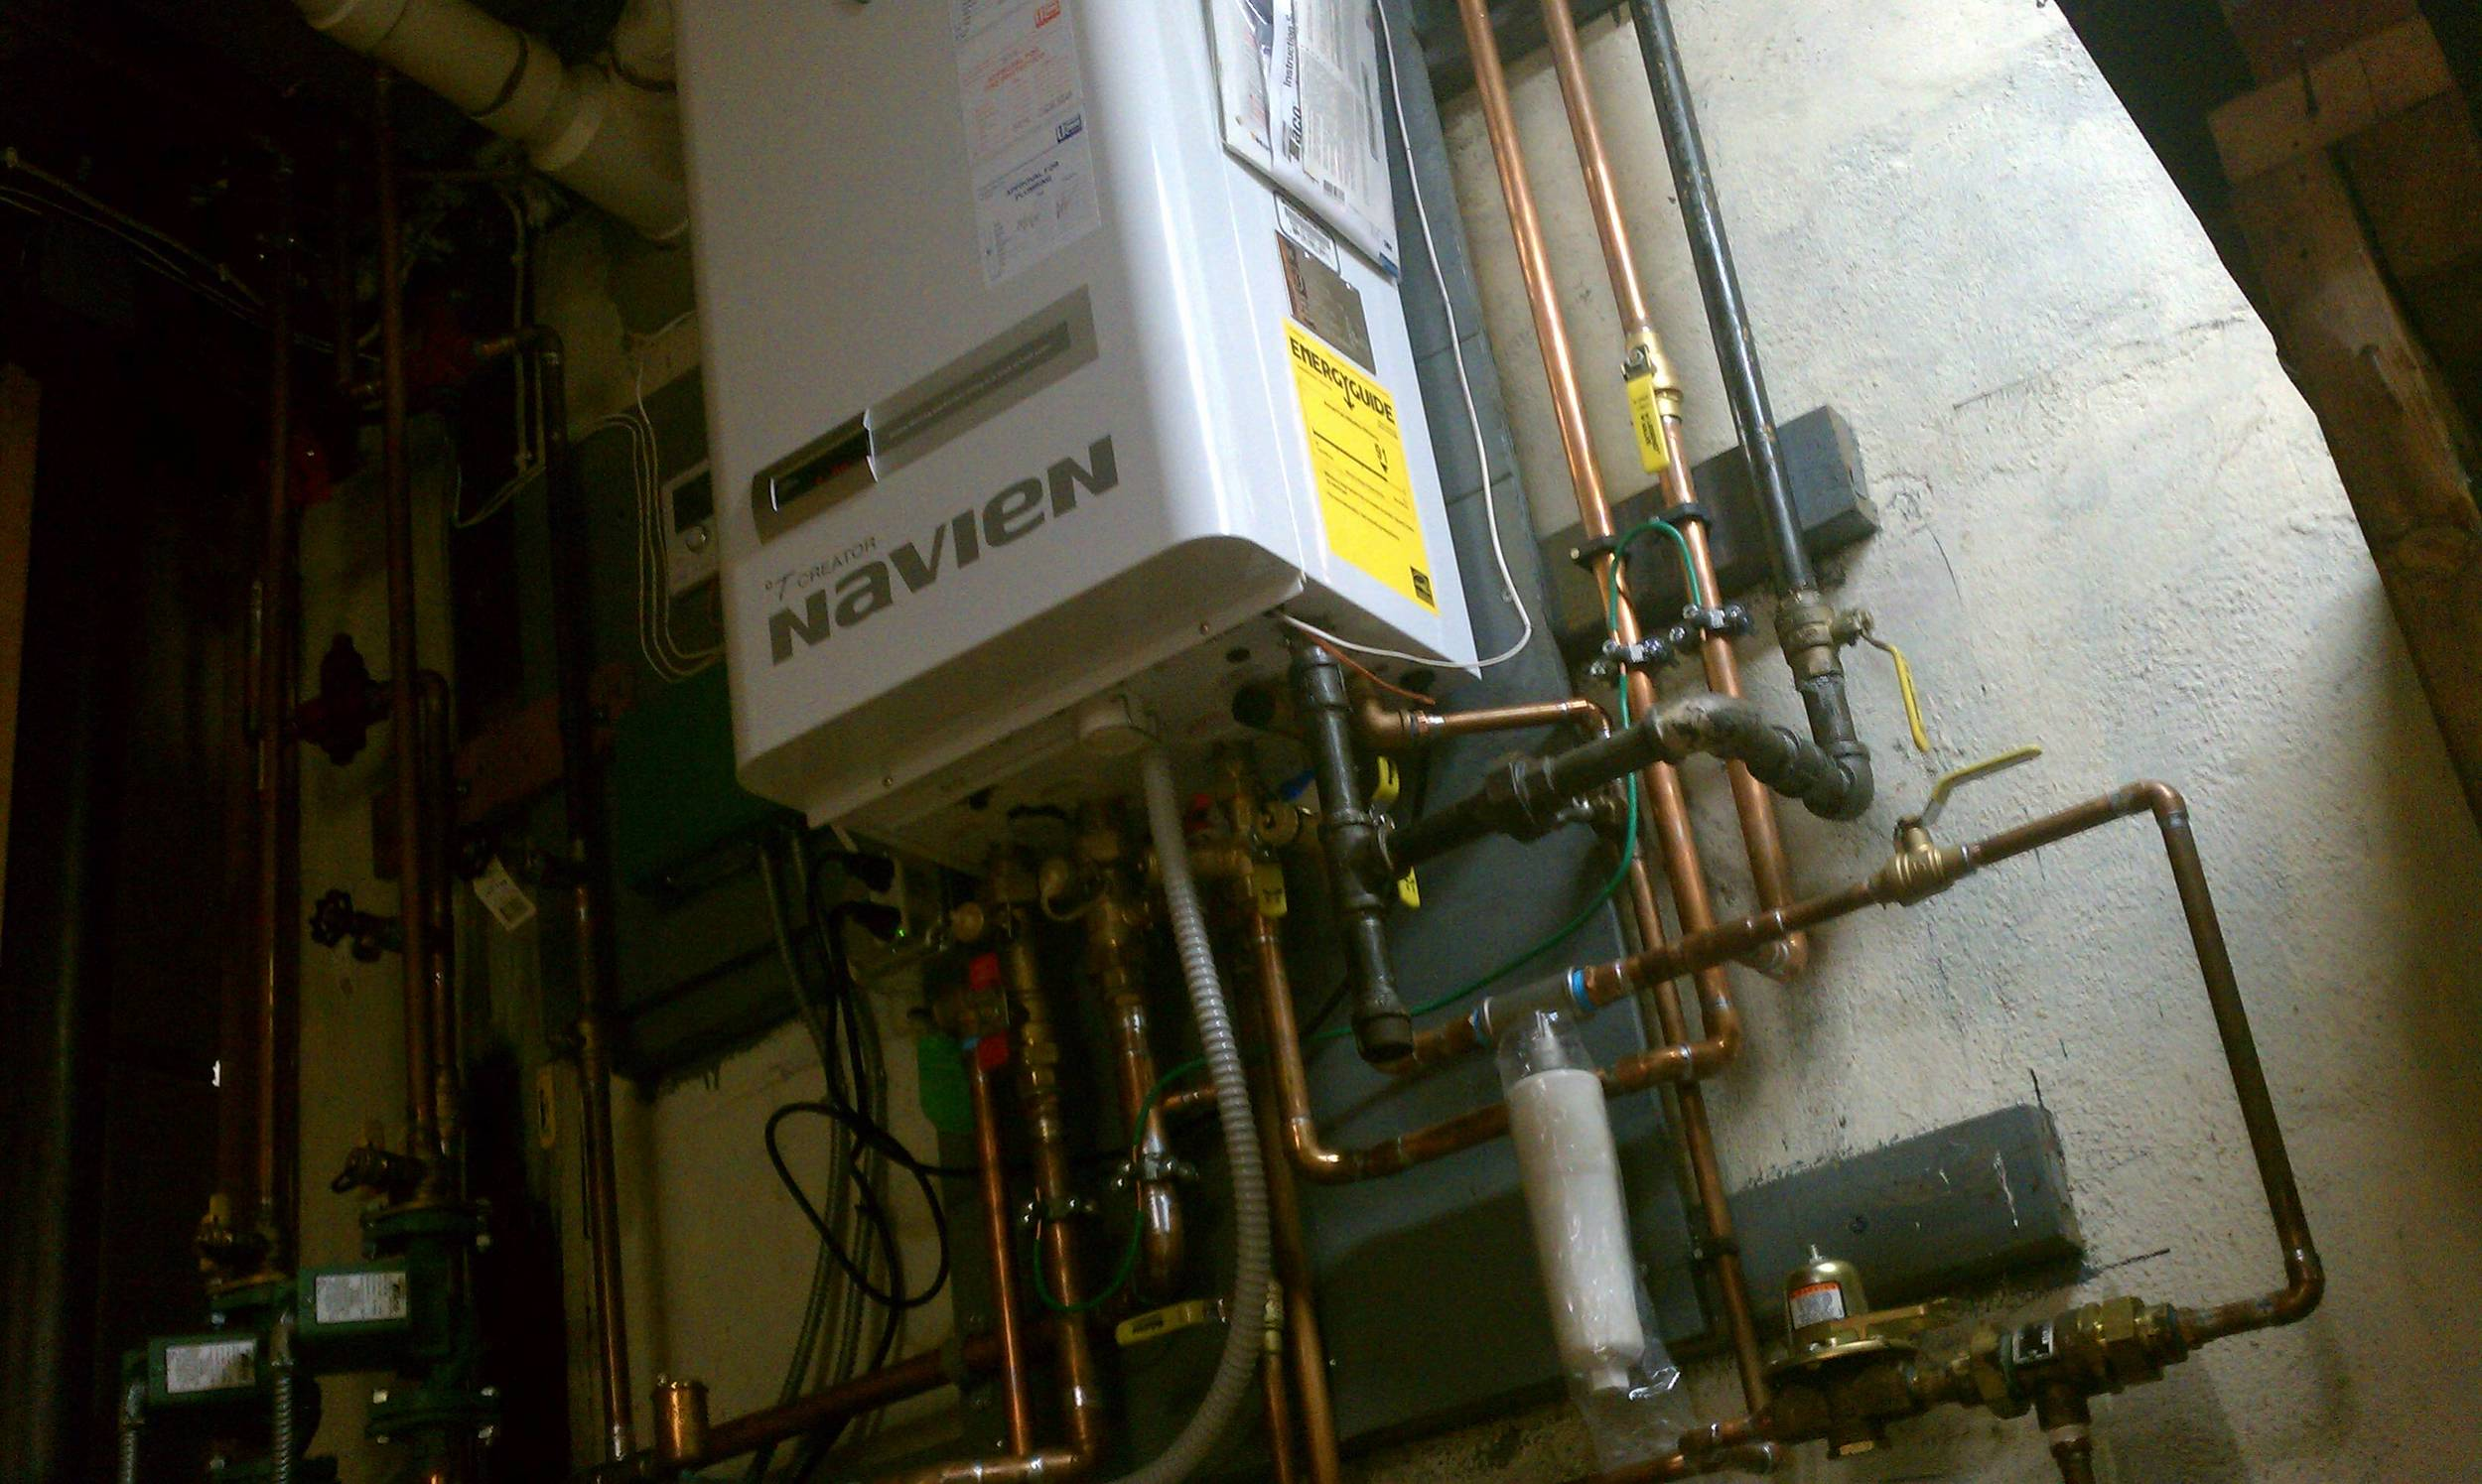 High Efficiency Combination Boiler and DHW by Groundswell Contracting